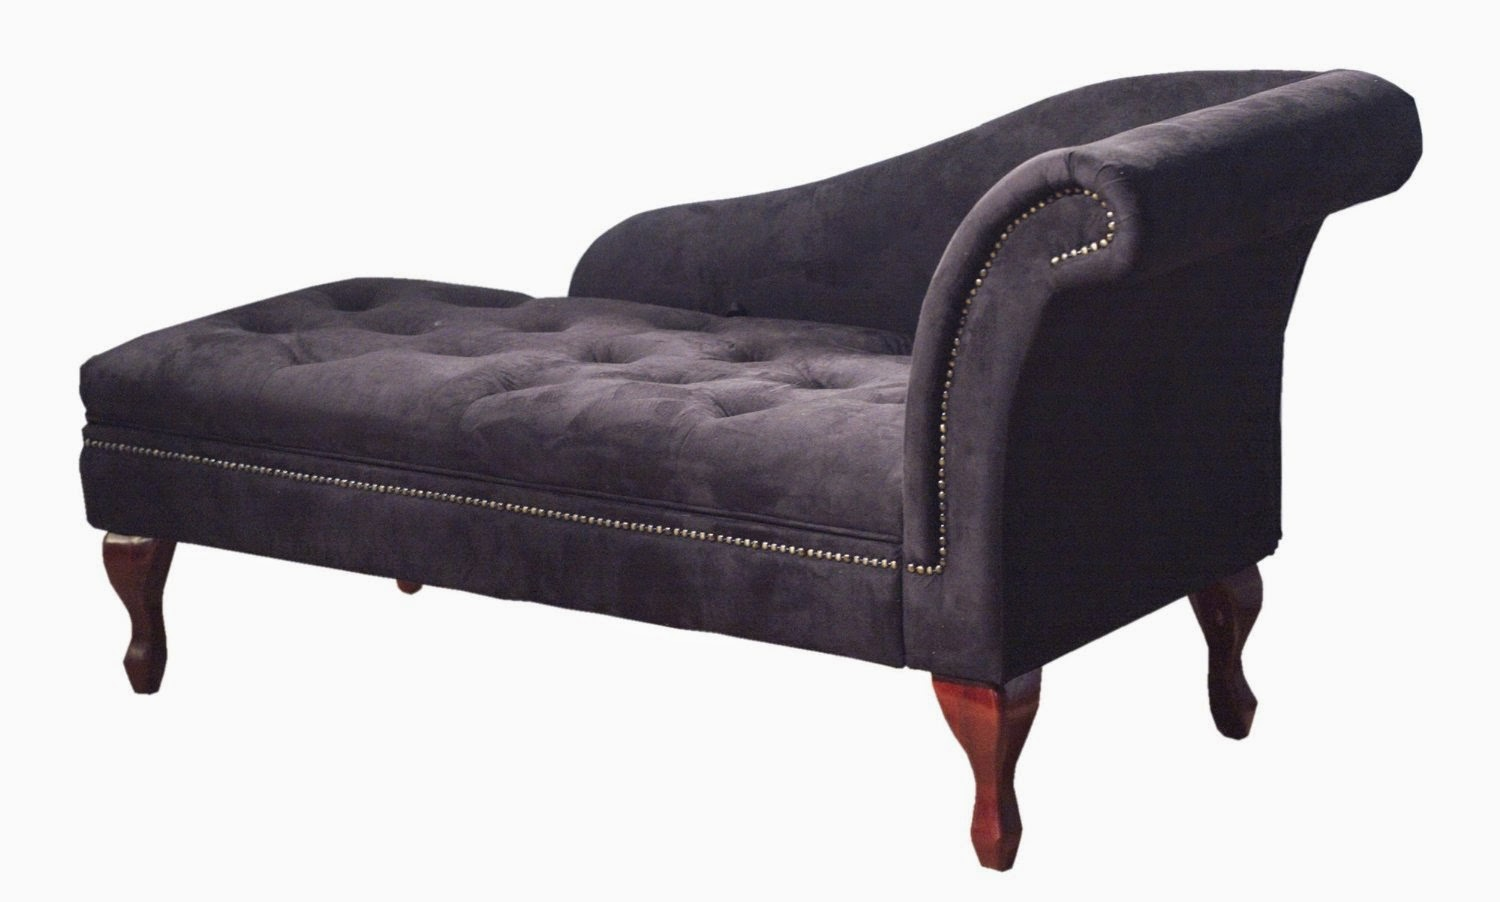 fainting couch: fainting couch for sale